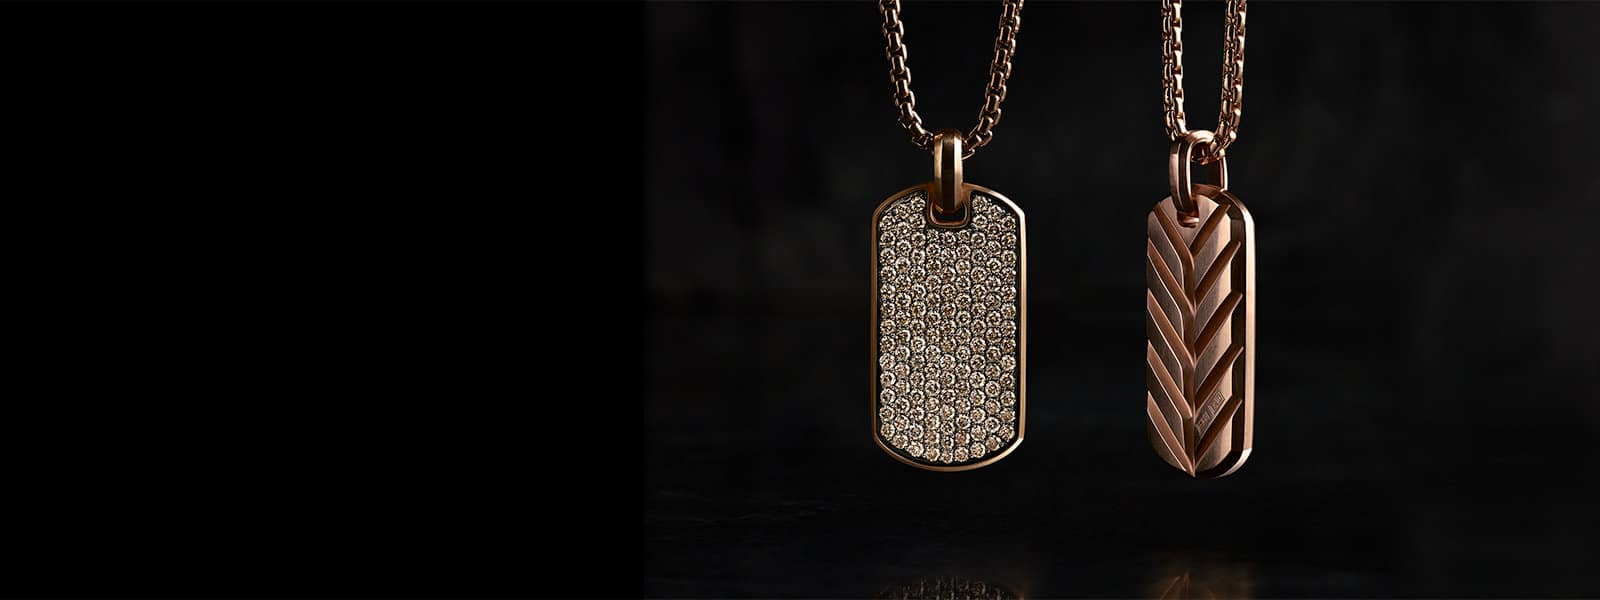 A David Yurman men's Streamline® tag in 18K rose gold with cognac diamonds, hanging on an 18K rose gold chain above a dark, reflective surface.